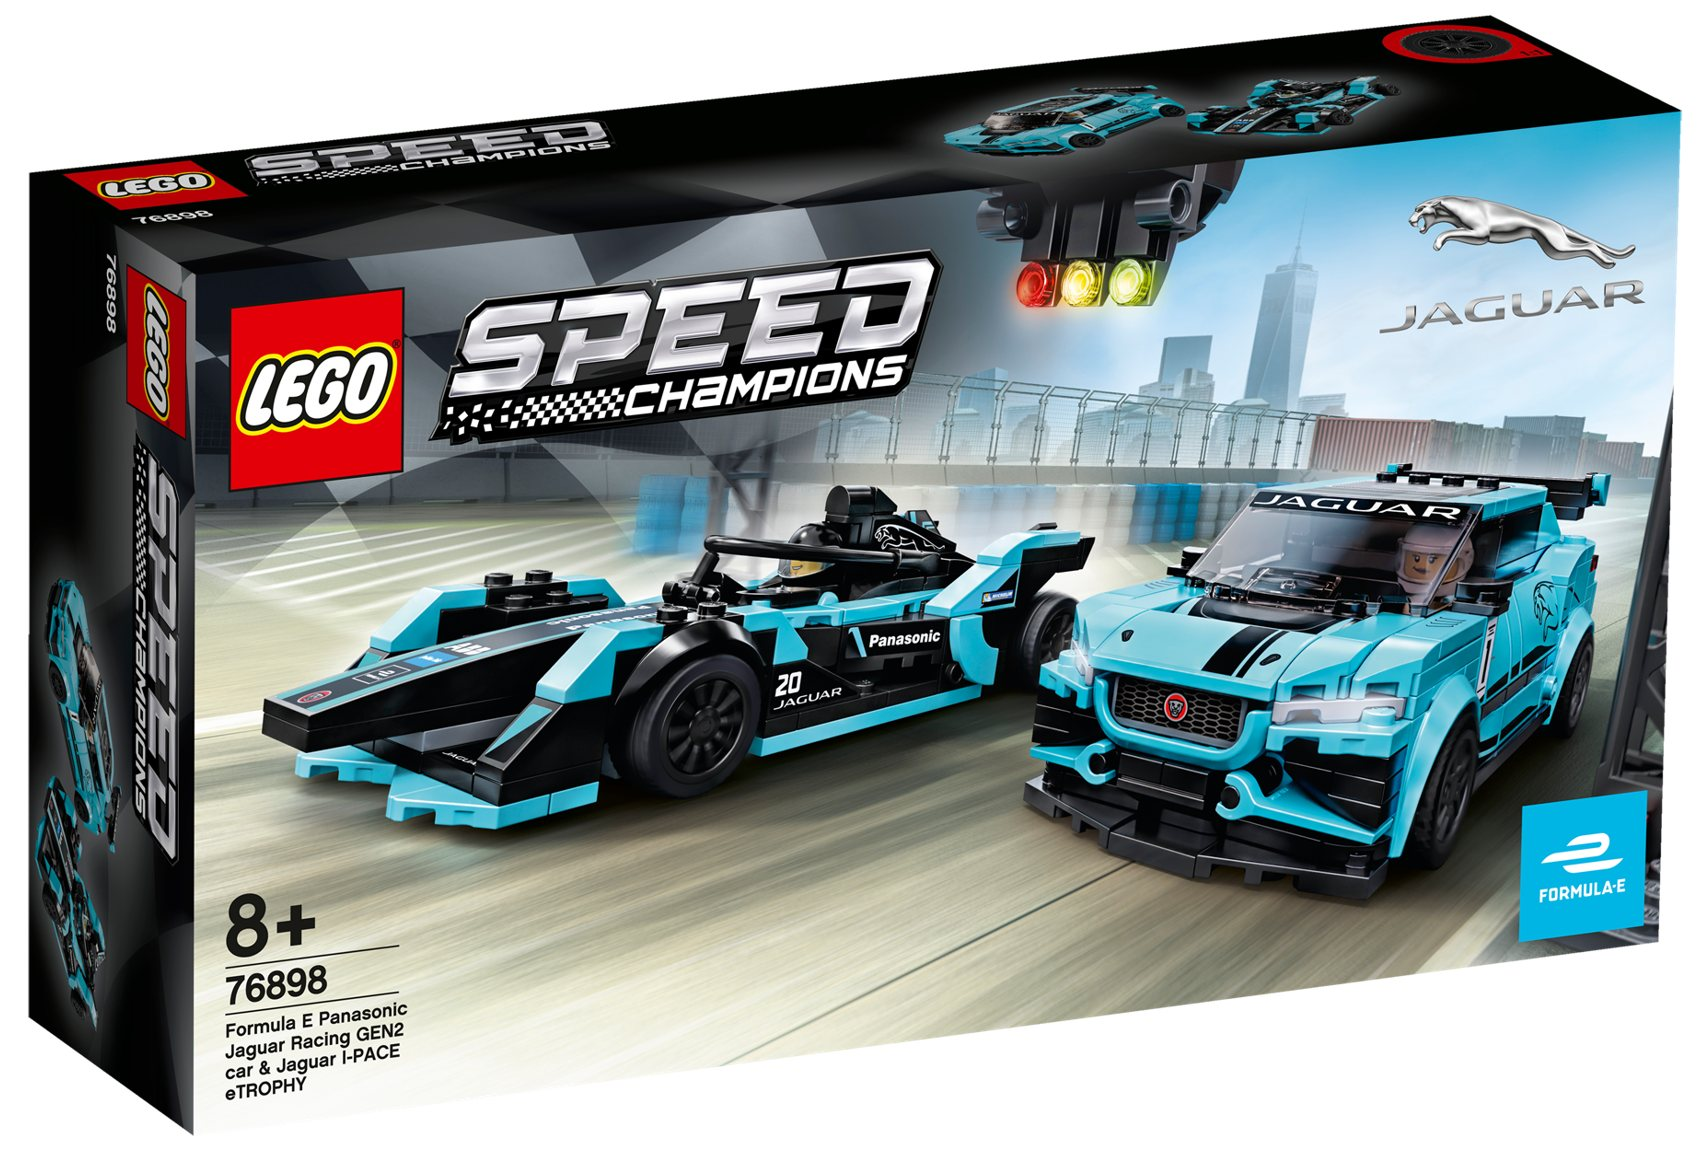 New Lego Sets 2020.First 2020 Speed Champions Set Revealed Brickset Lego